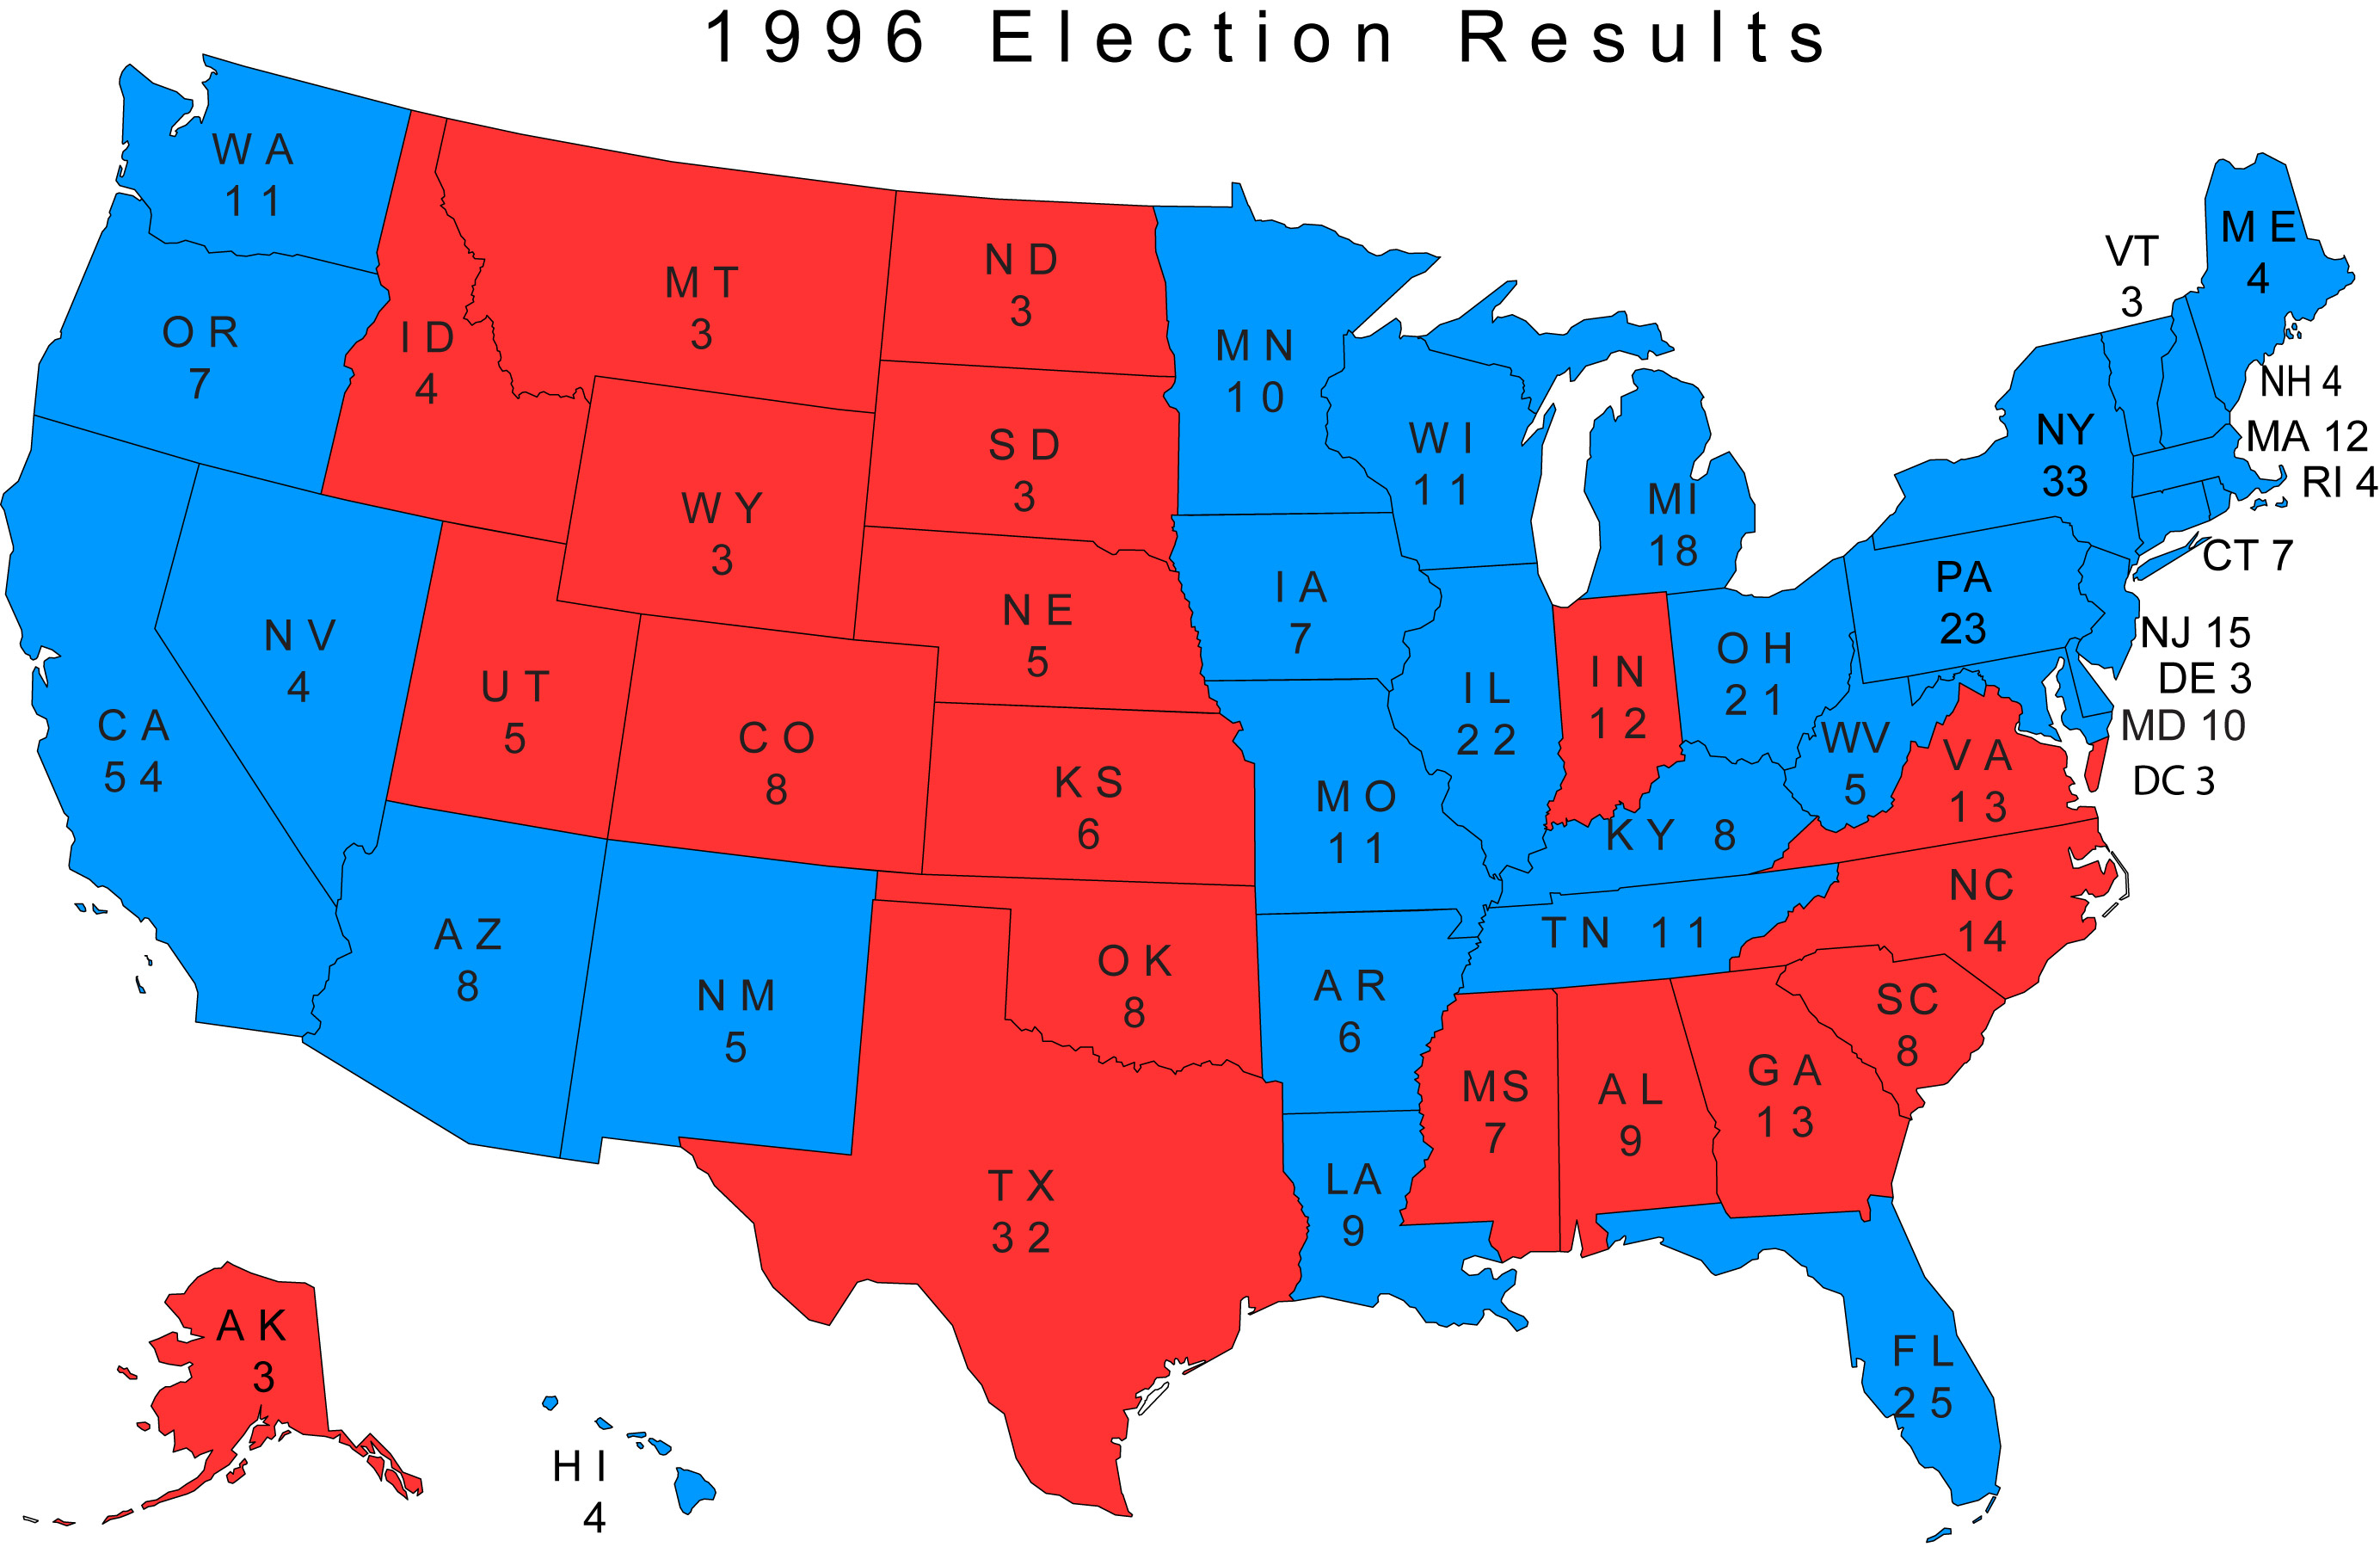 1996 election results